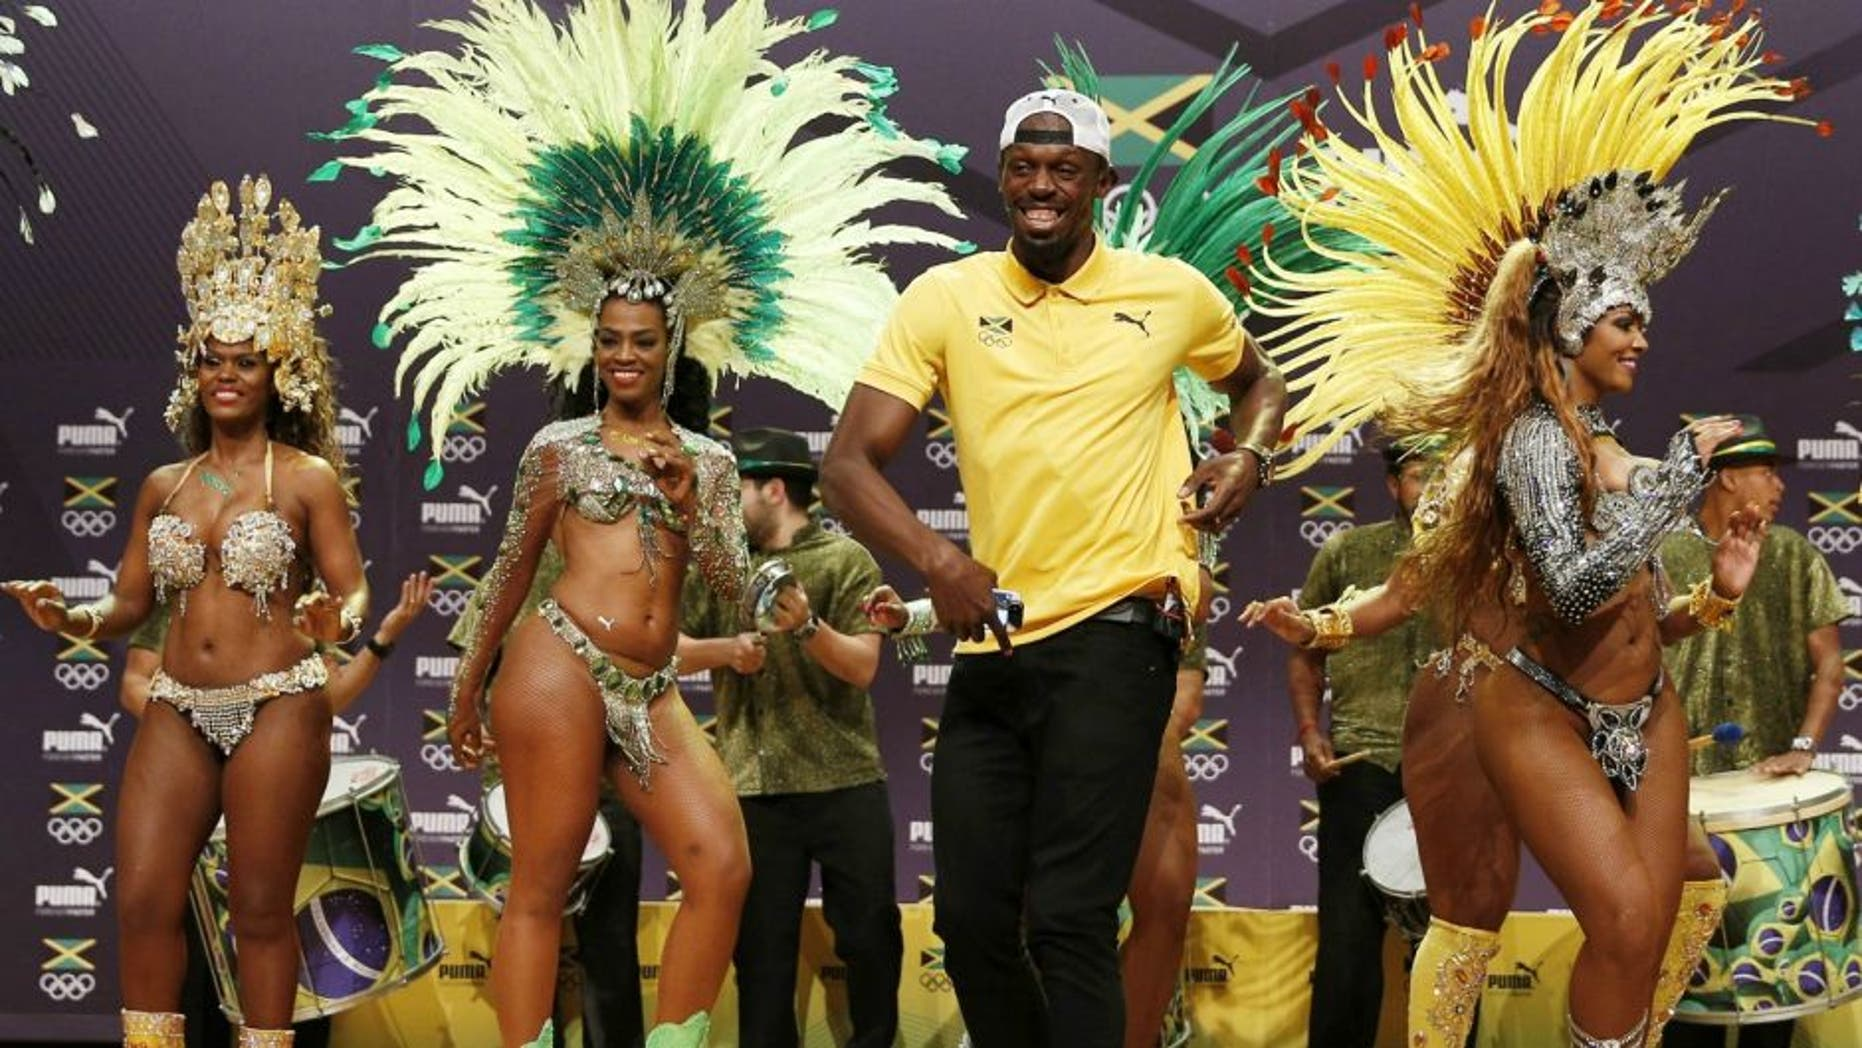 TOPSHOT - Usain Bolt (C) dances samba during a Jamaican Olympic Association and Puma press conference at the Cidade Das Artes in Rio de Janeiro on August 8, 2016. / AFP / Adrian DENNIS (Photo credit should read ADRIAN DENNIS/AFP/Getty Images)